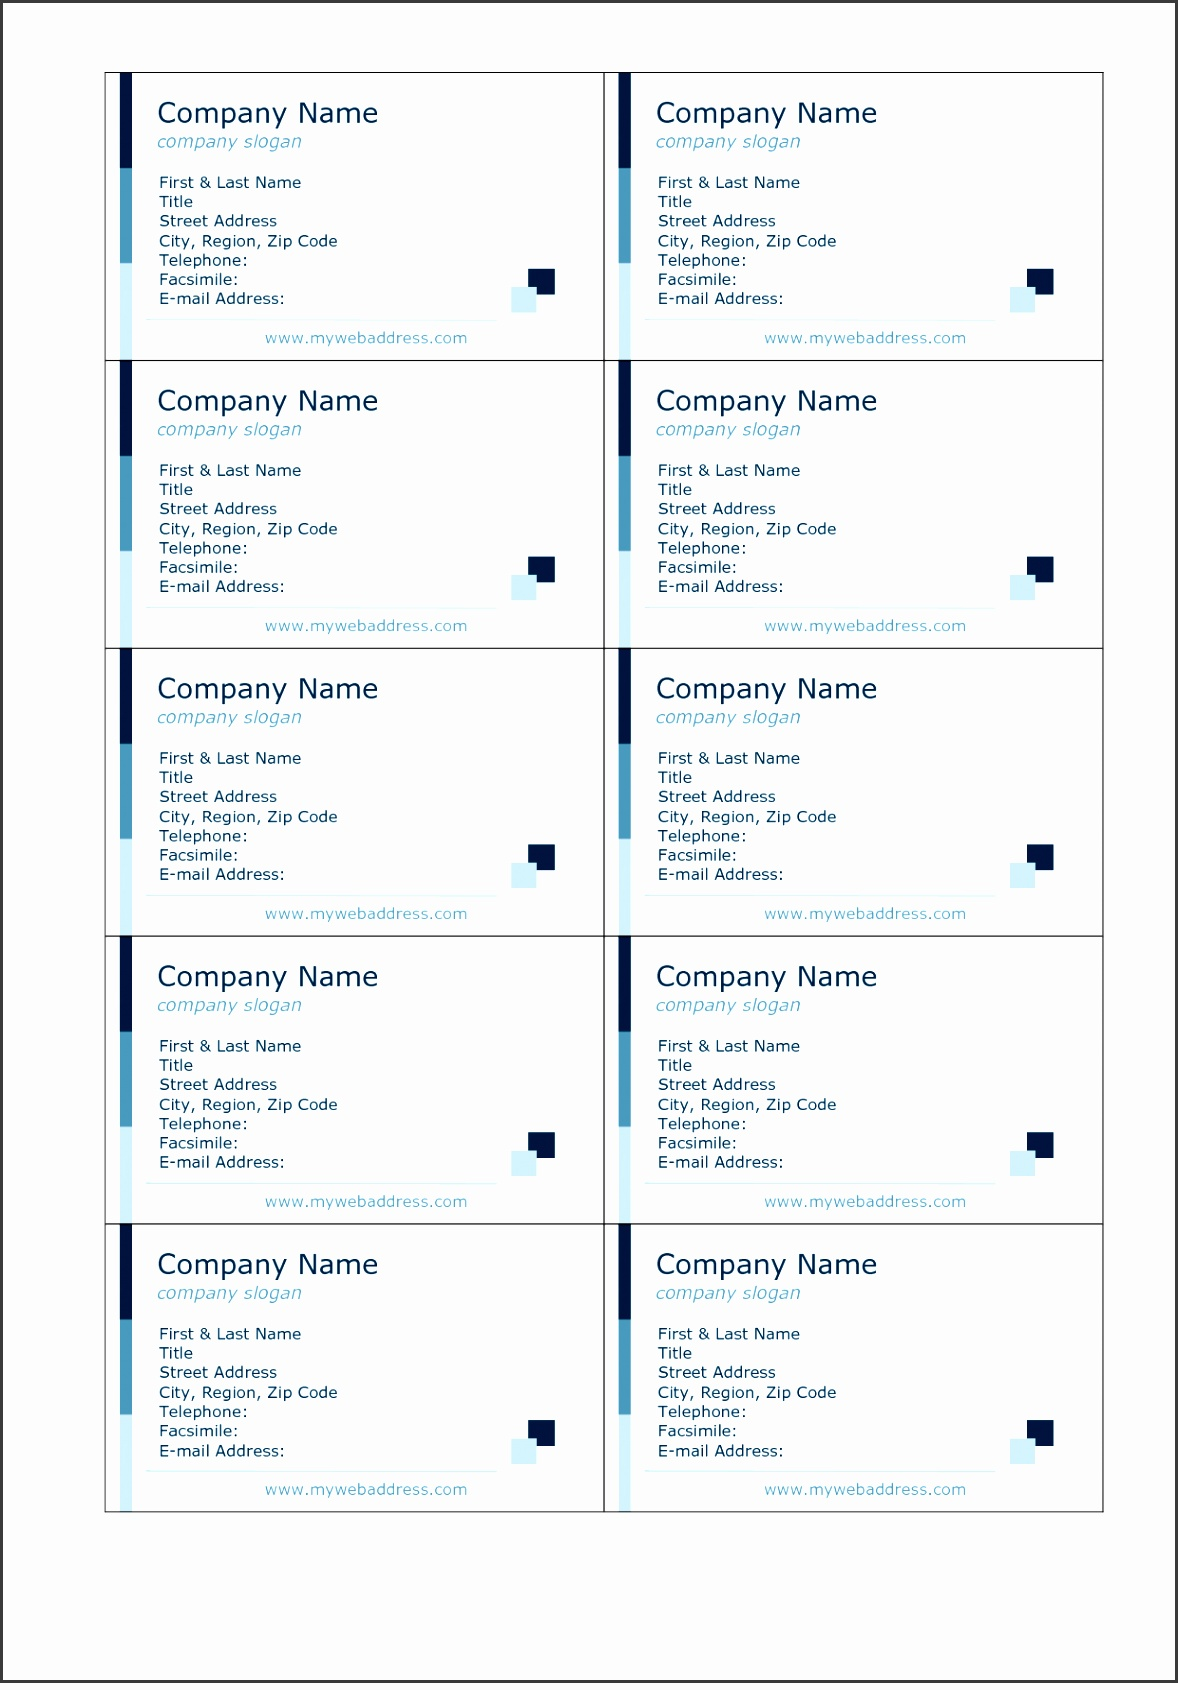 Full Size of Designs avery Business Card Template 8371 Pdf Plus Avery Business